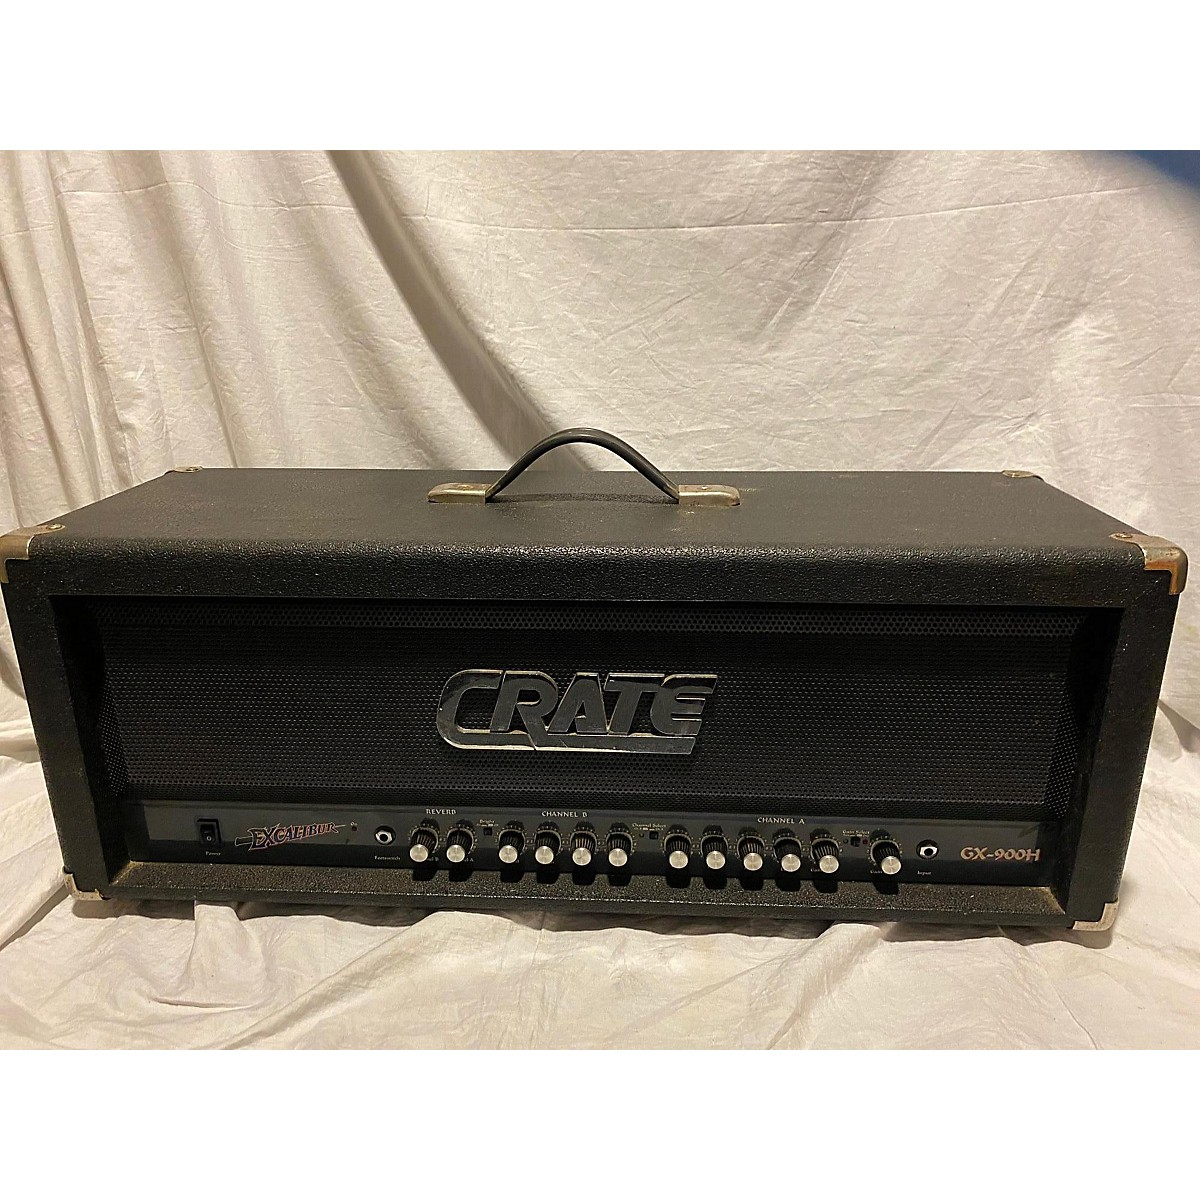 Crate Excalibur Gx-900H Solid State Guitar Amp Head